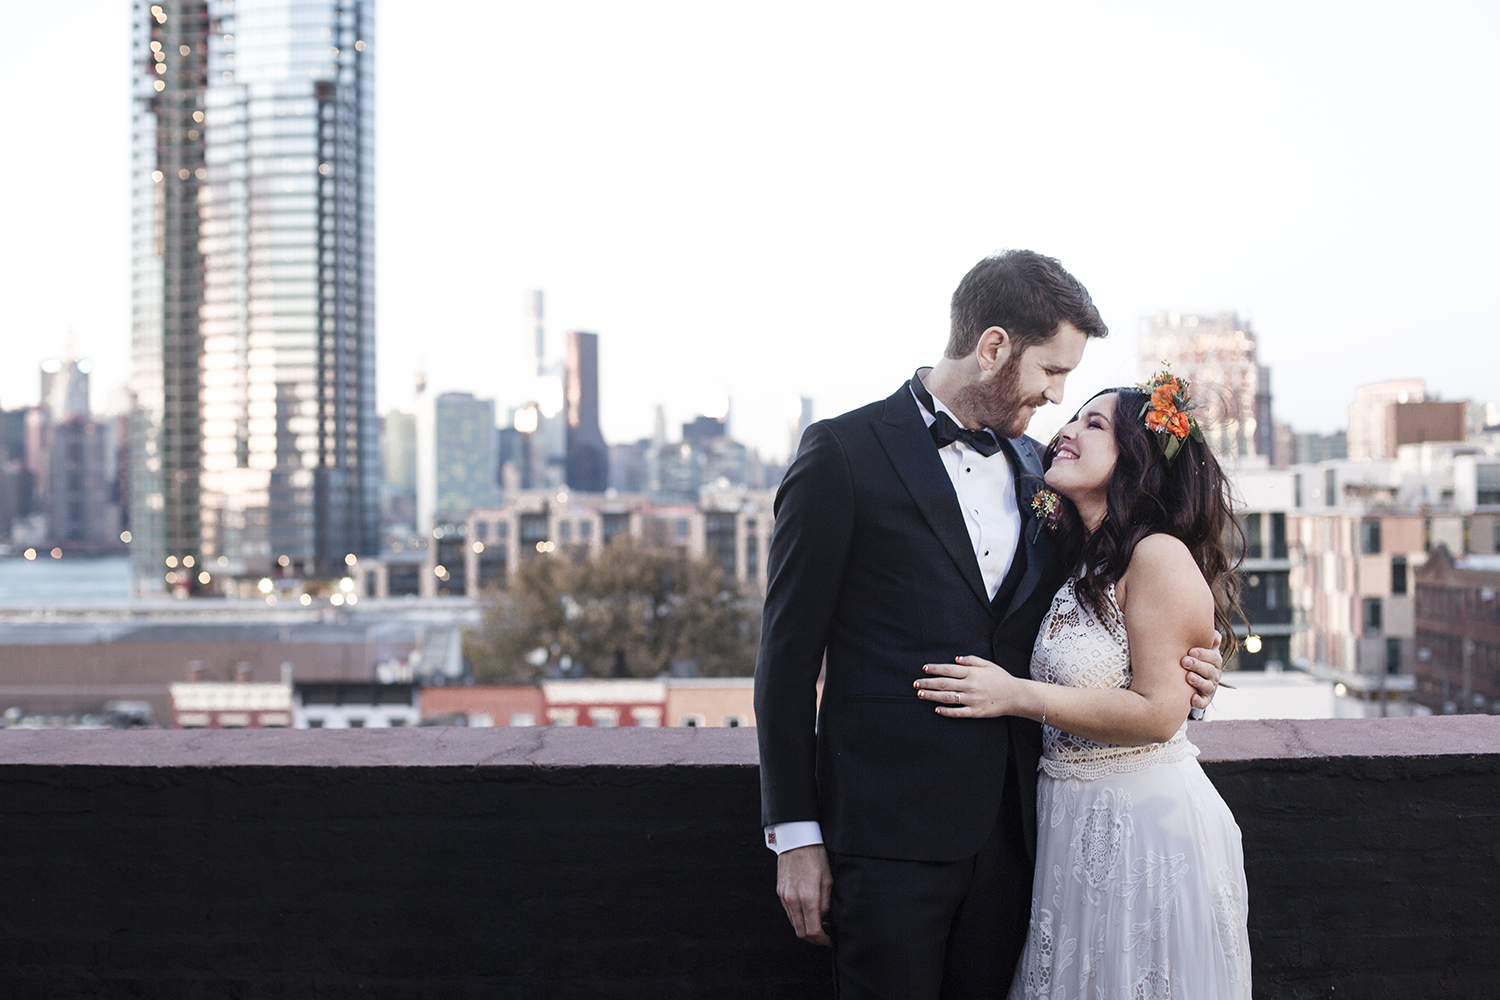 New York wedding | Natalia Wisniewska Photography